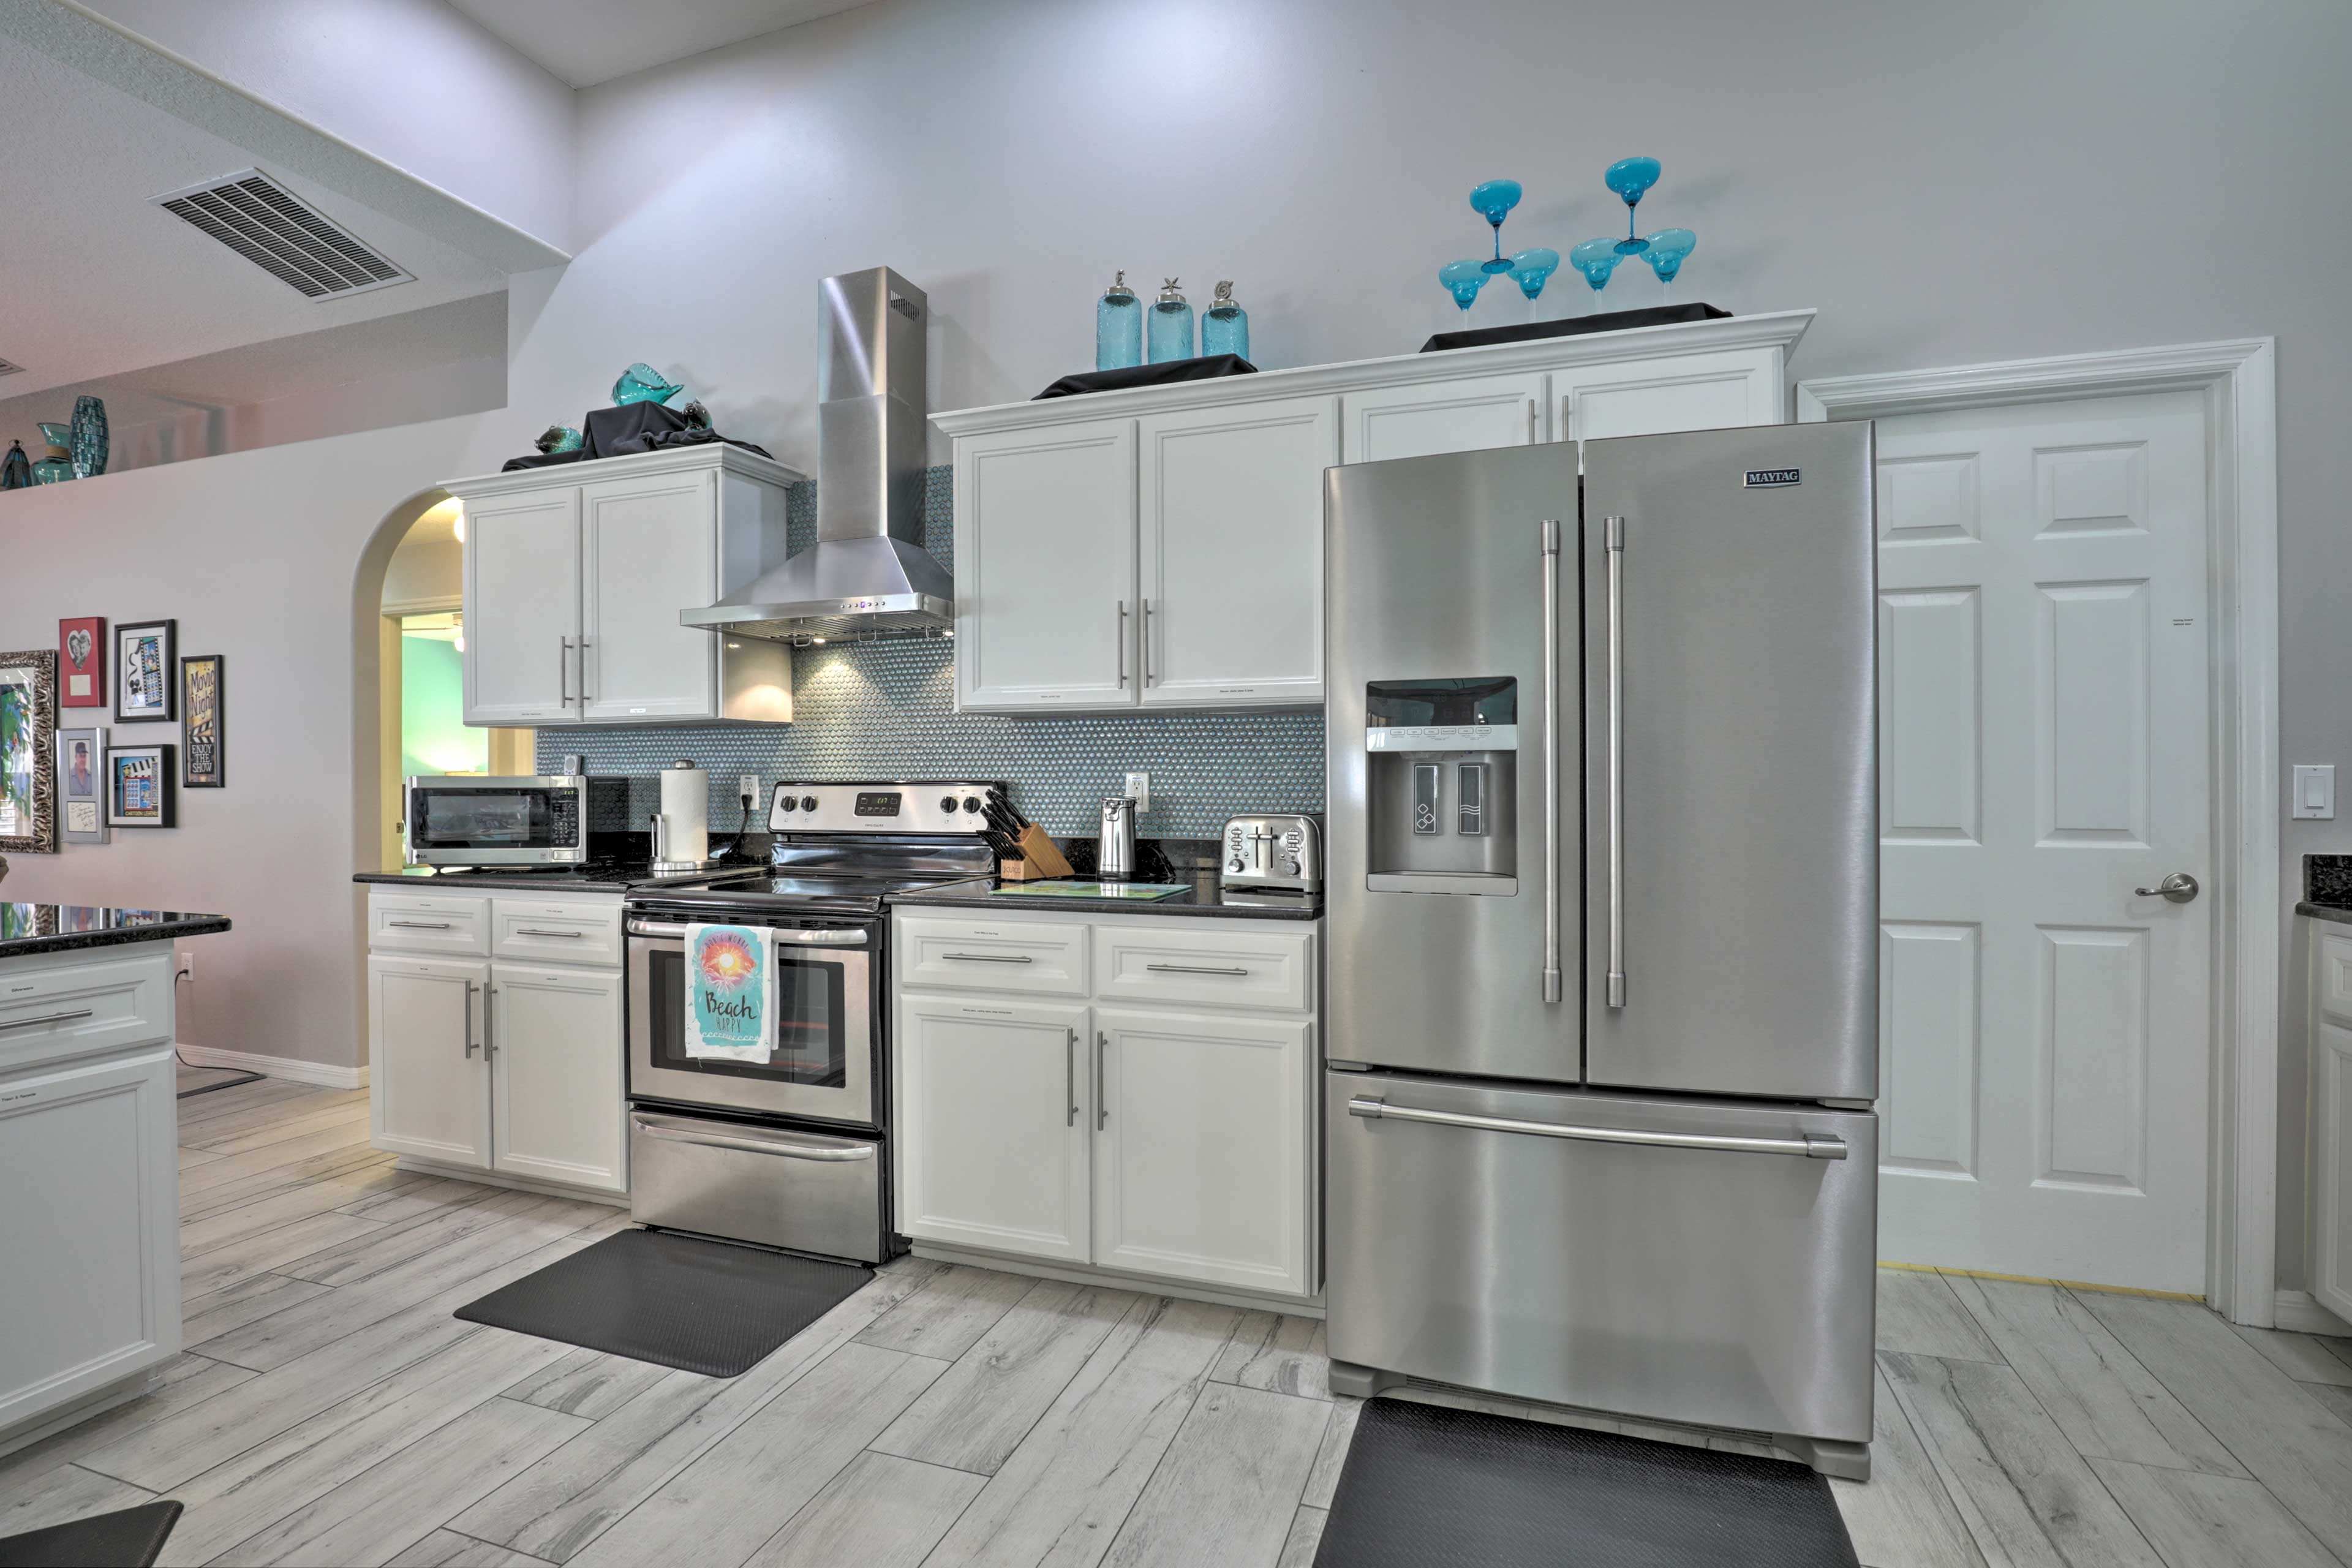 The kitchen is complete with granite counters and stainless steel appliances.